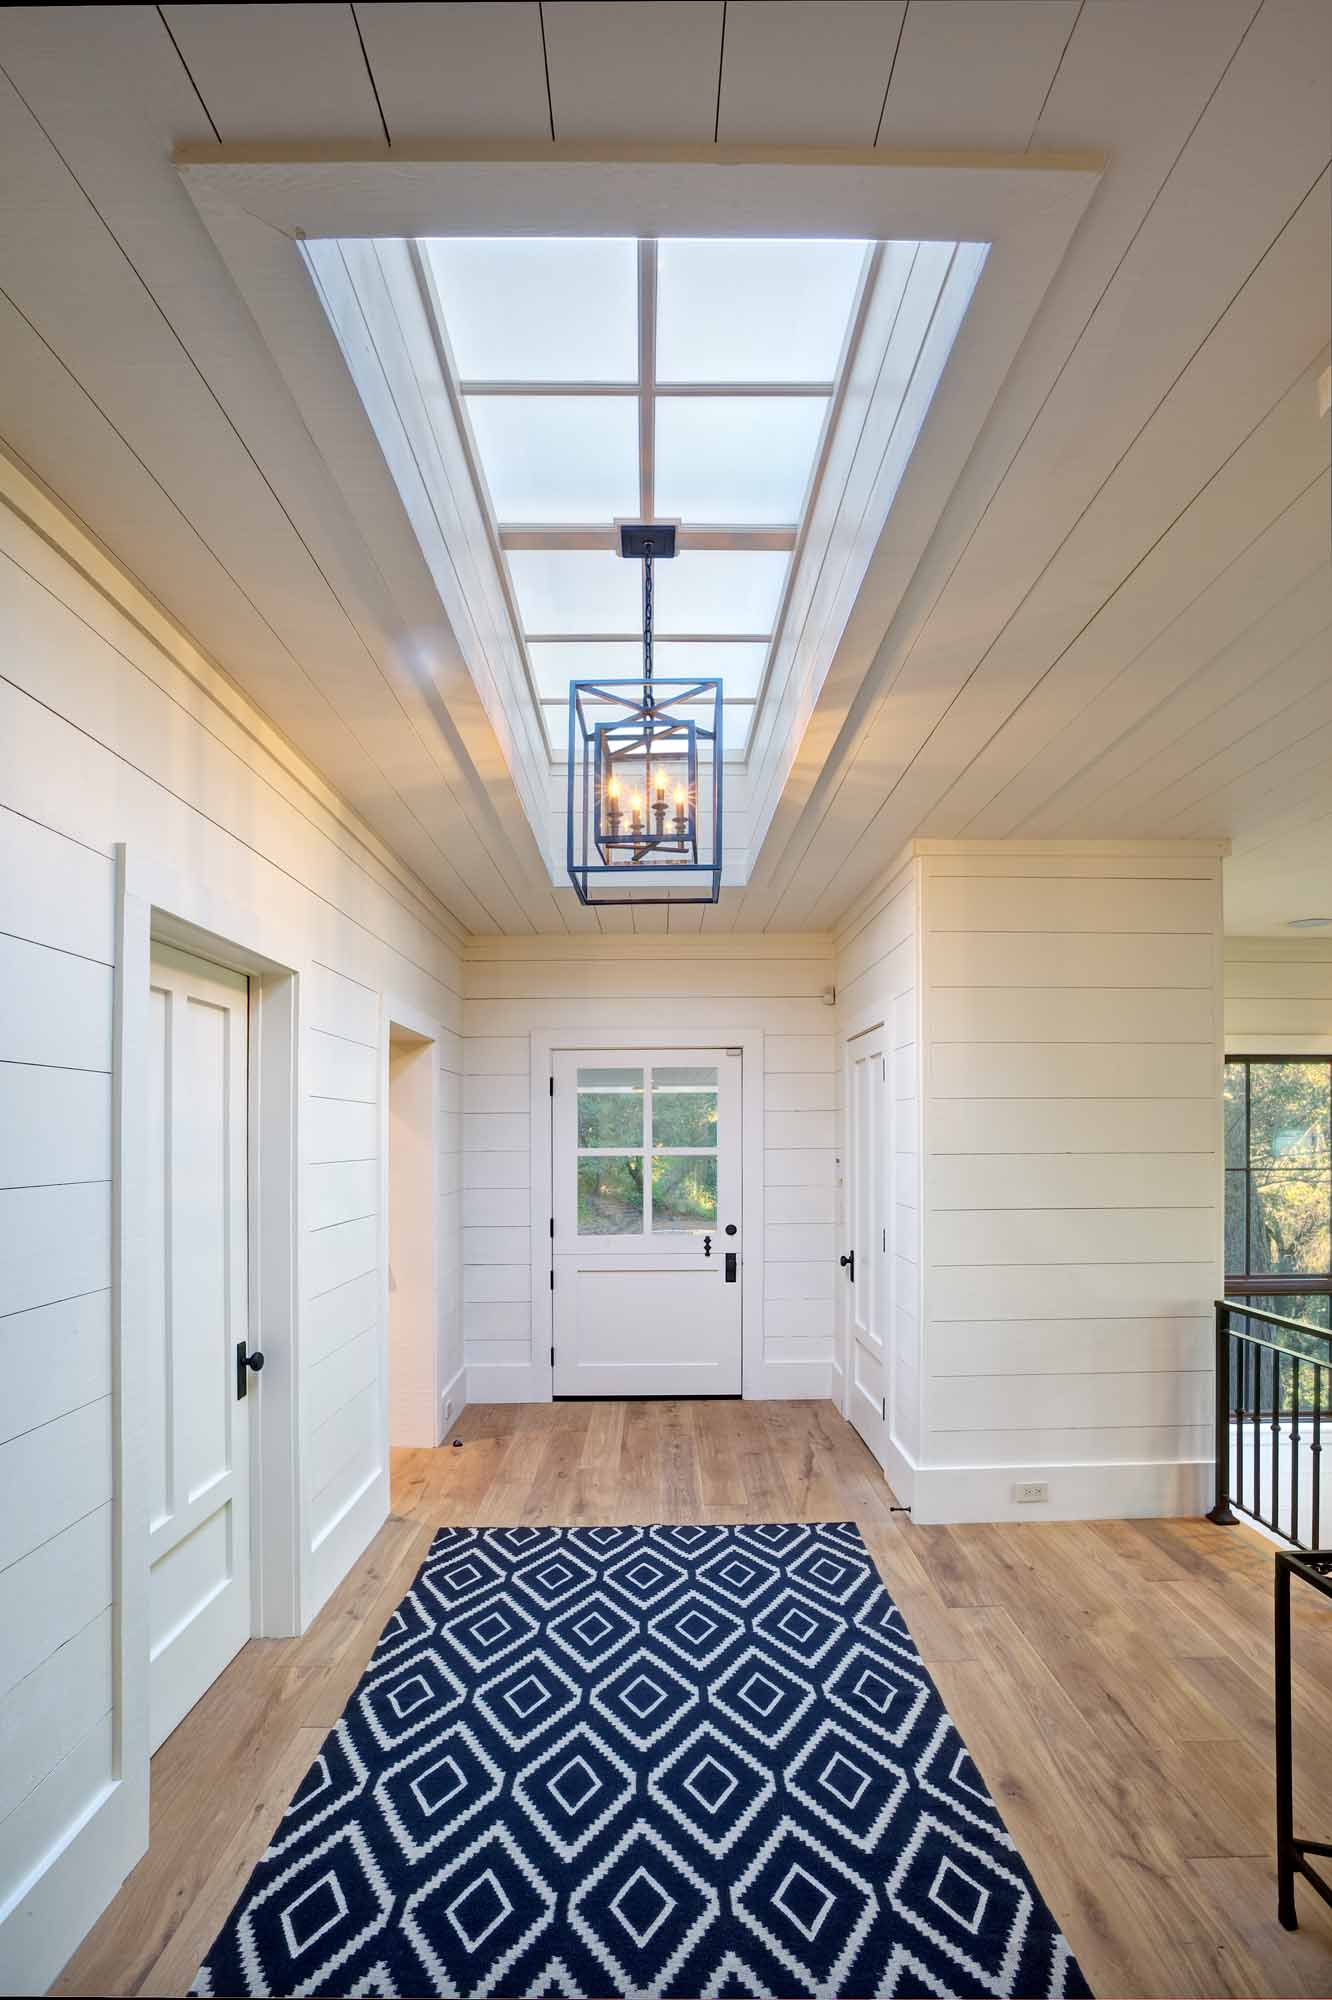 2488SpringMountainSkylight2.jpg